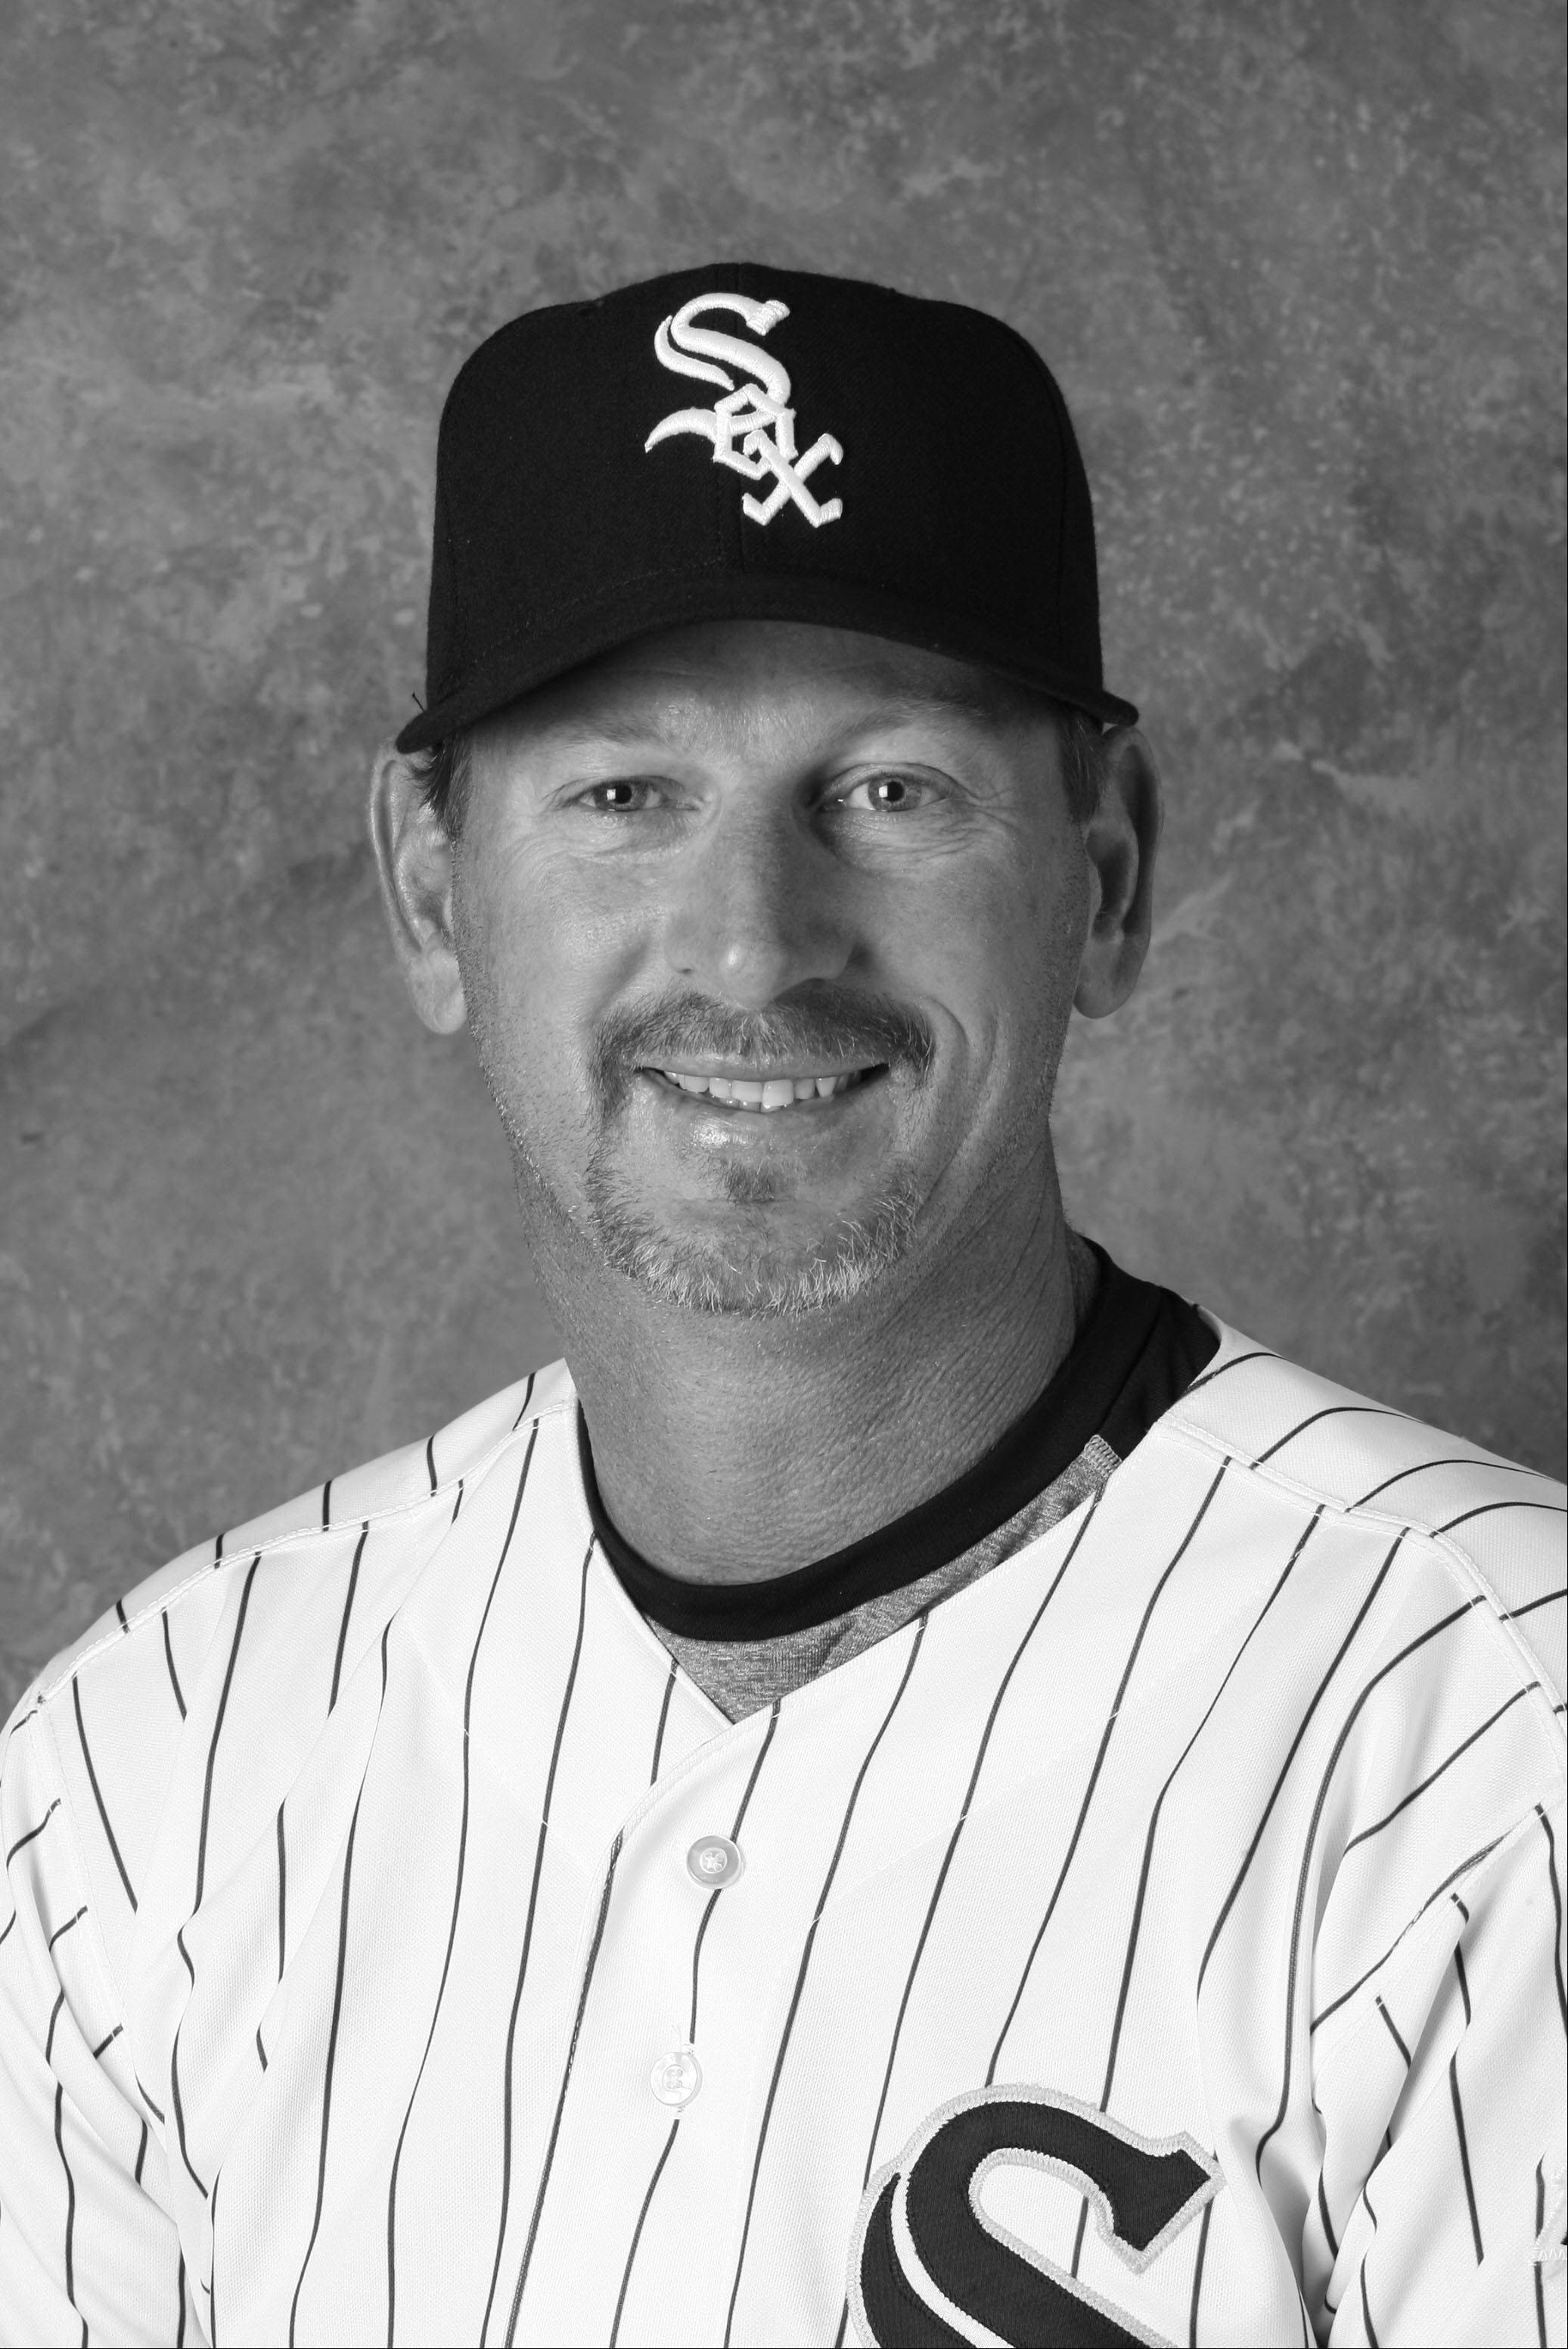 Bobby Thigpen is the new bullpen coach for the White Sox.